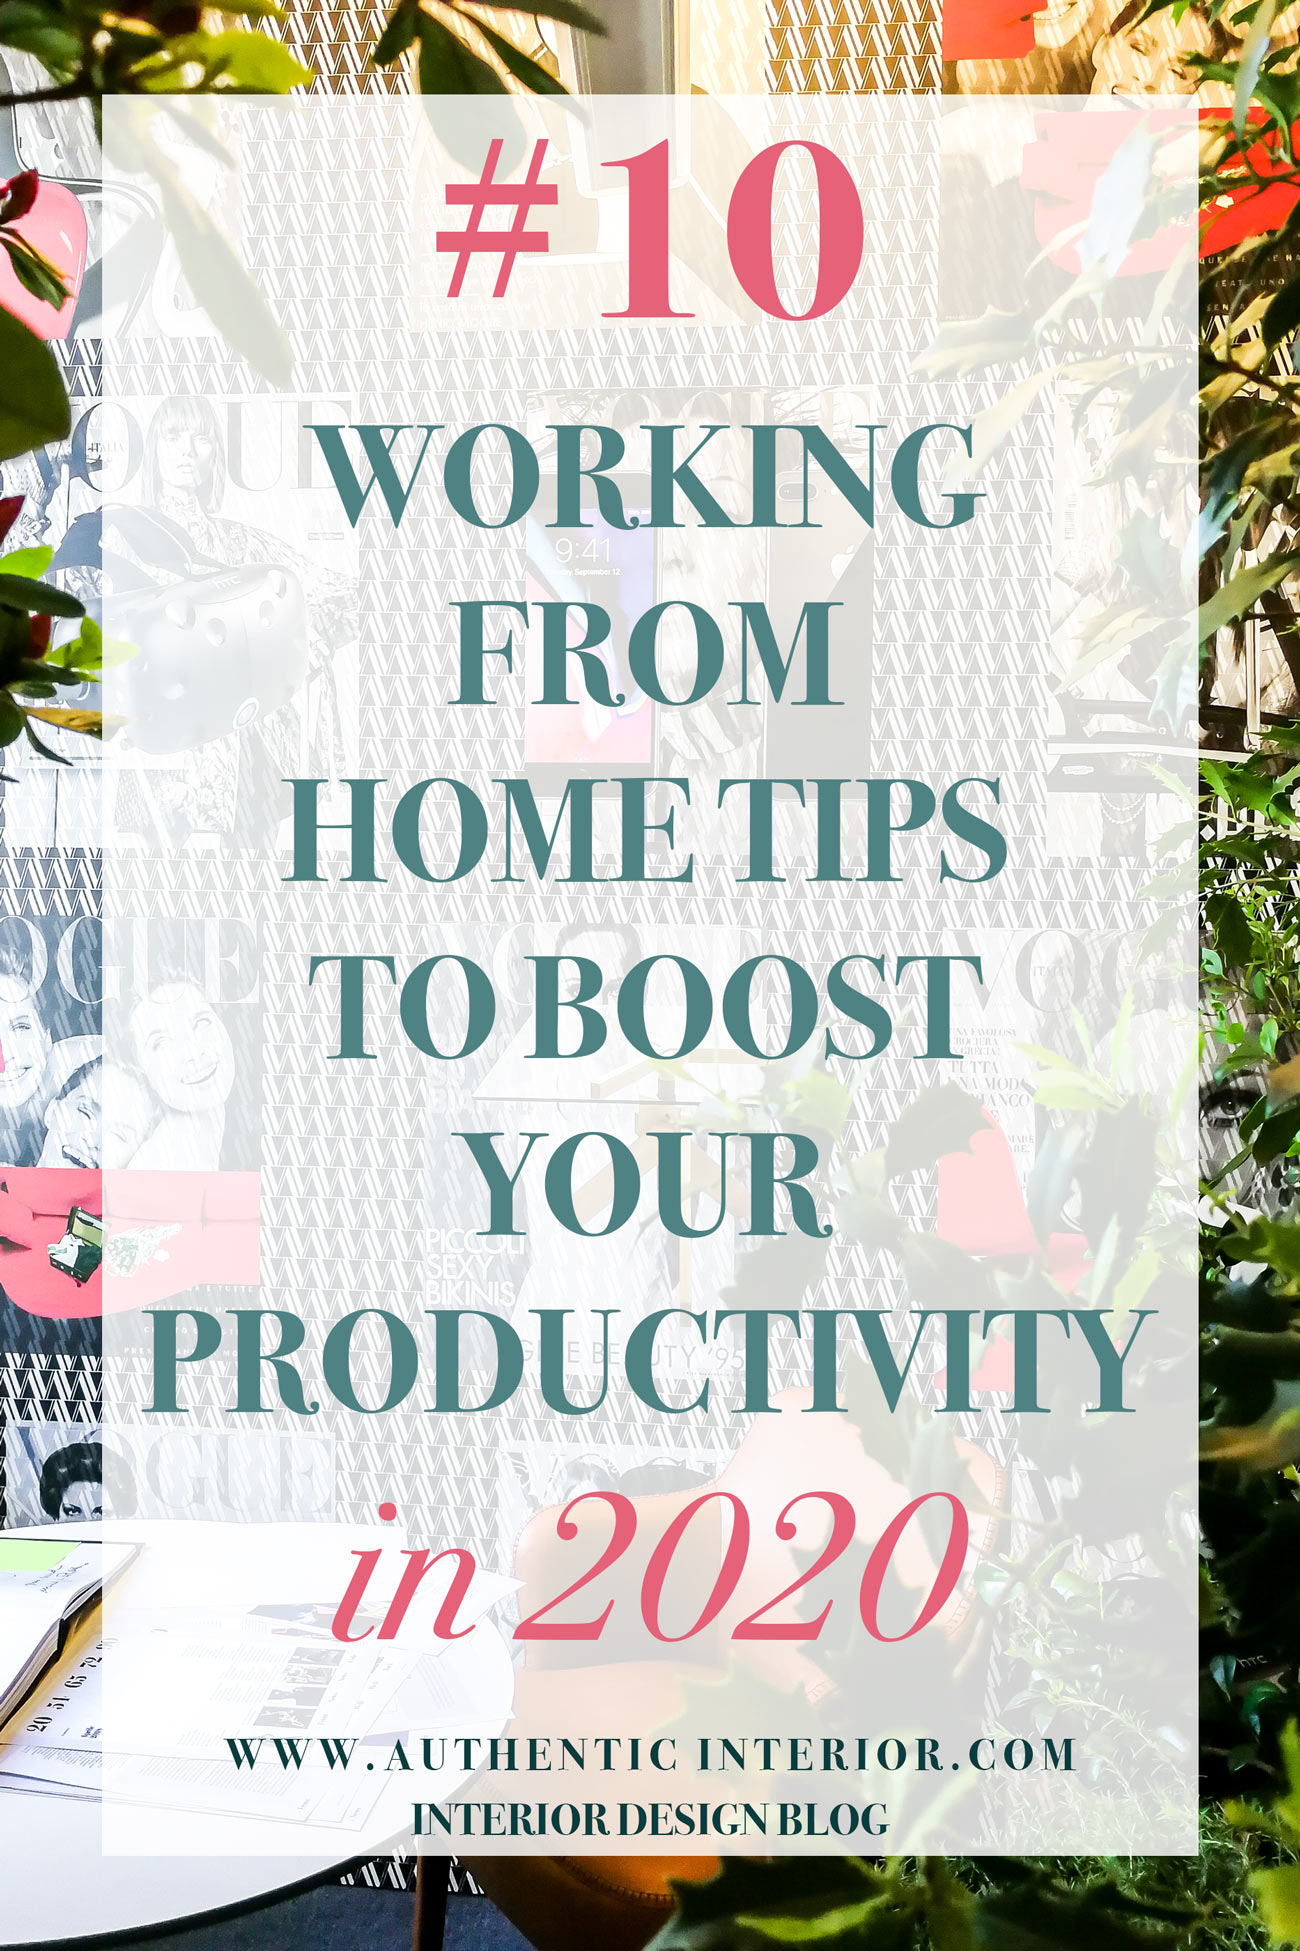 Working from home tips to boost your productivity - AUTHENTIC INTERIOR Design blog